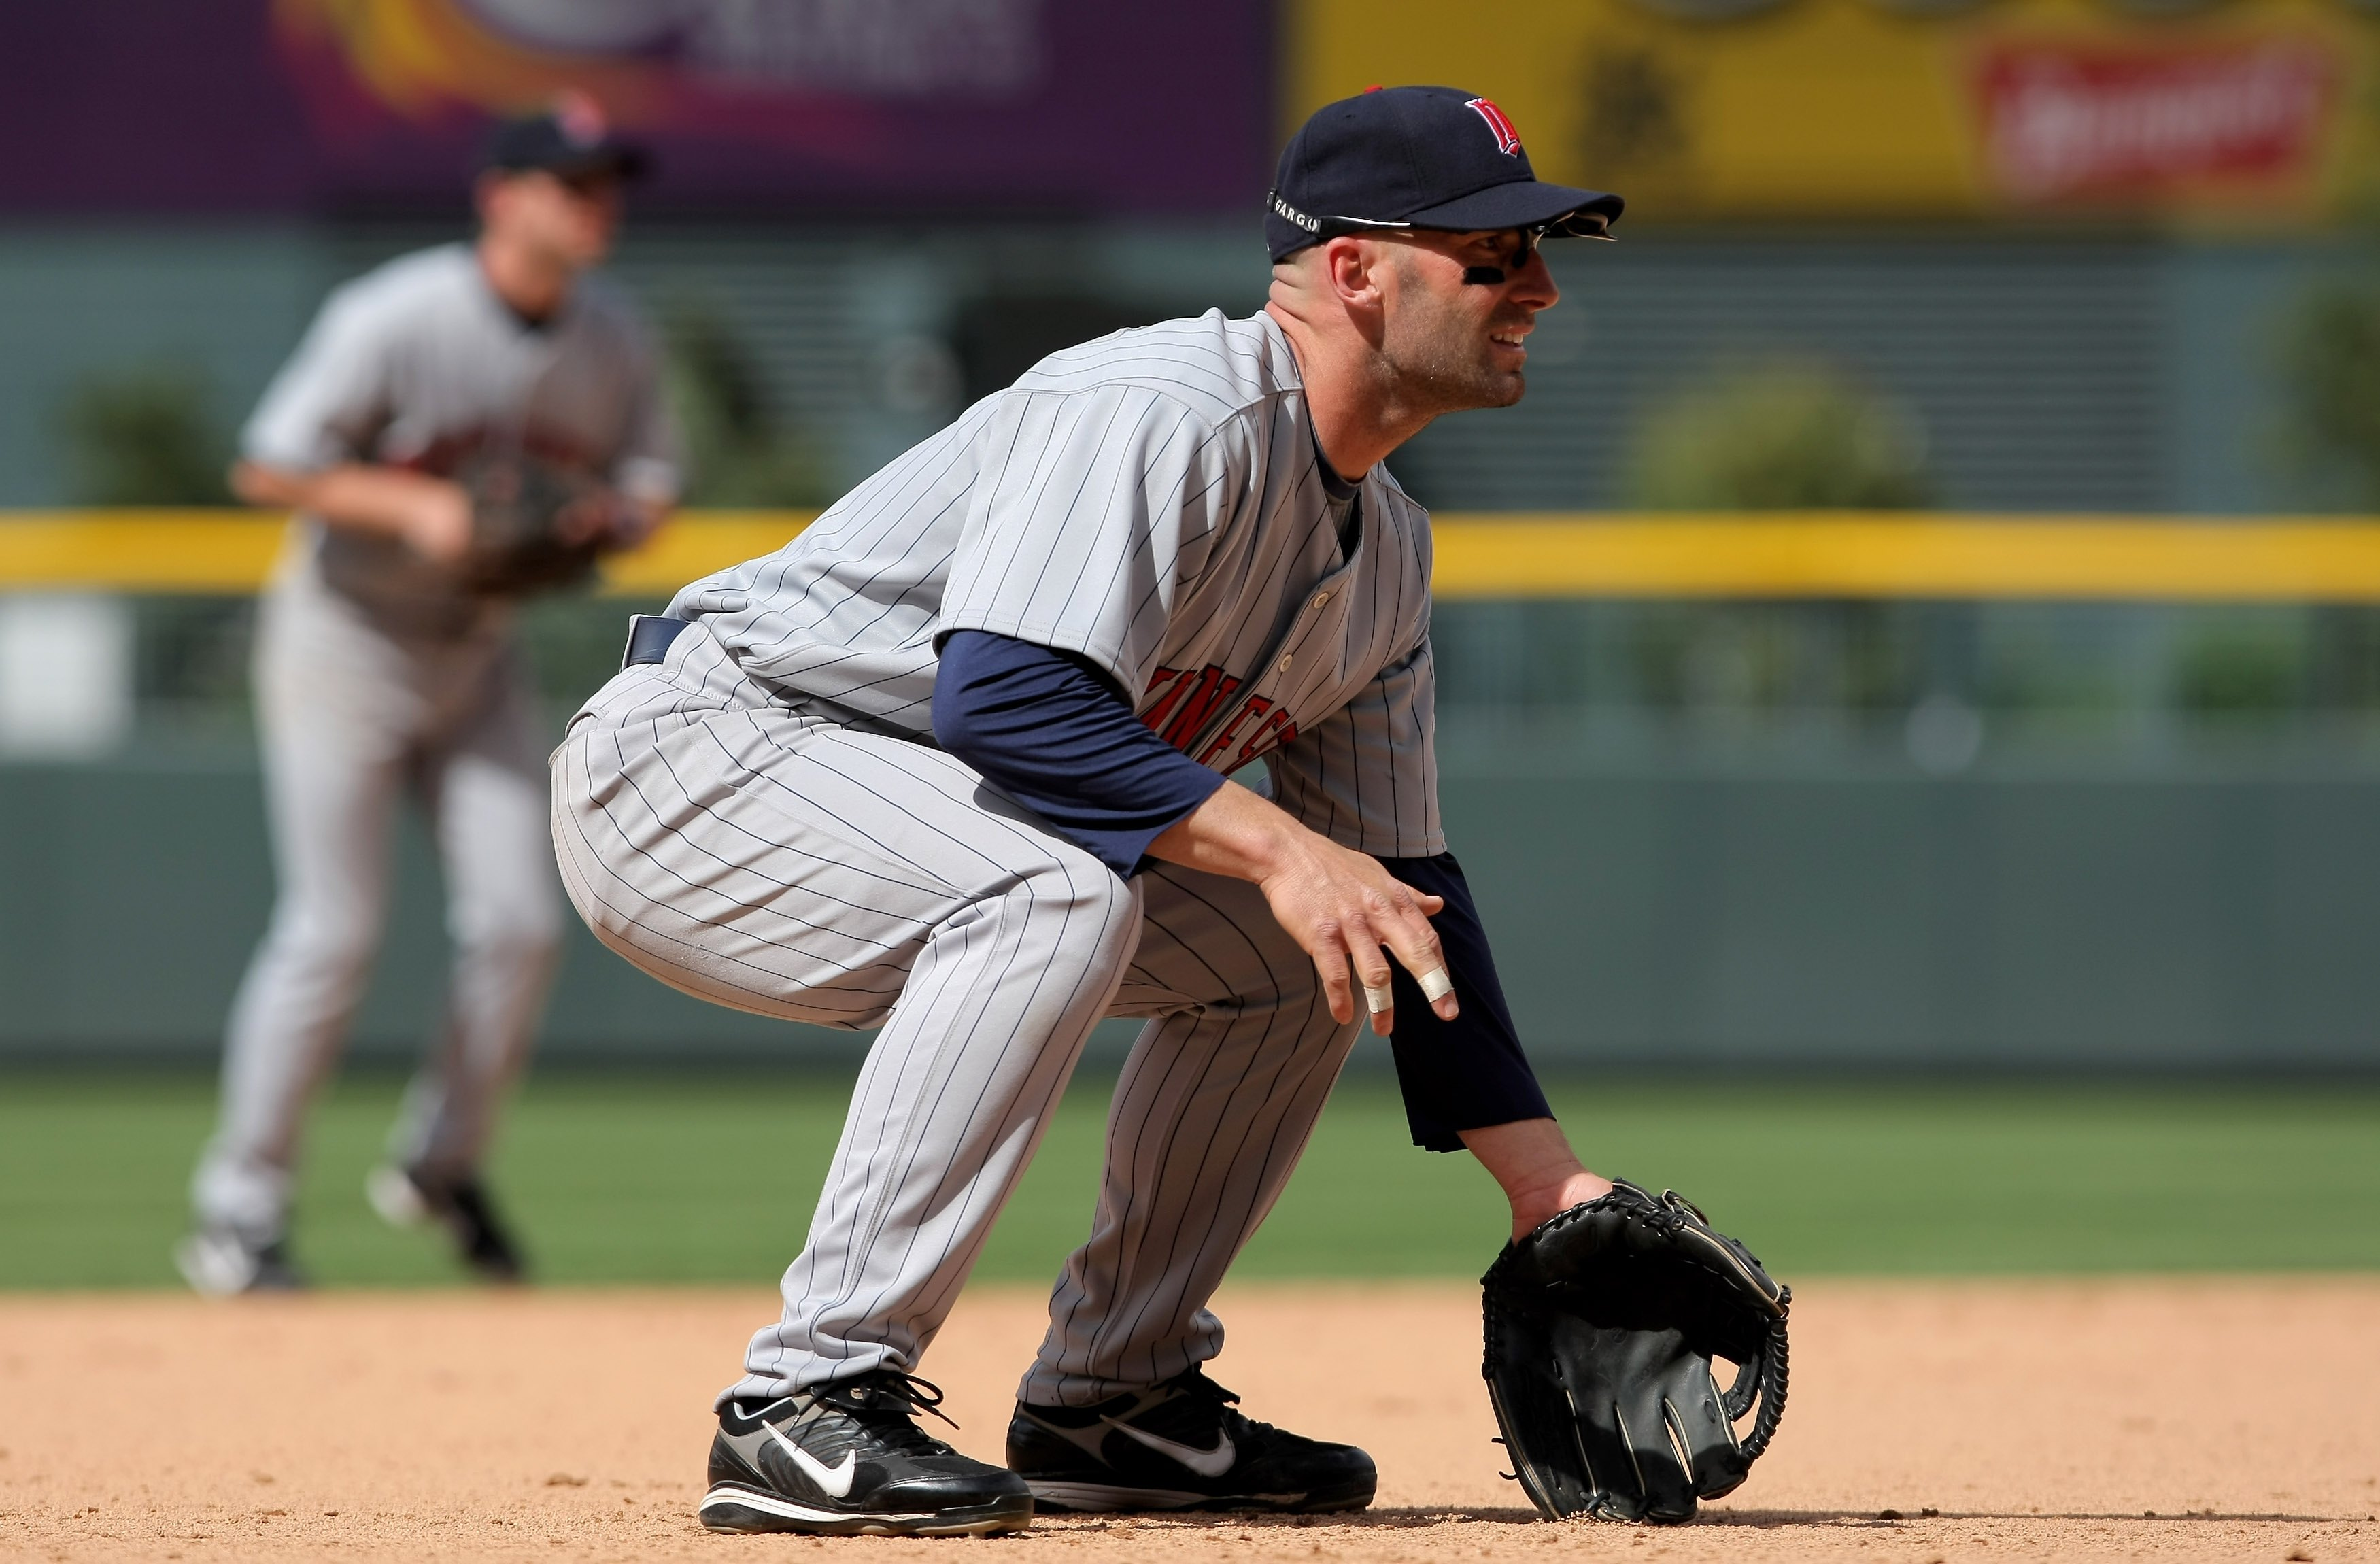 DENVER - MAY 18:  Third baseman Howie Clark #19 of the Minnesota Twins plays defense against the Colorado Rockies during Interleague MLB action at Coors Field on May 18, 2008 in Denver, Colorado. The Rockies defeated the Twins 6-2.  (Photo by Doug Pensing